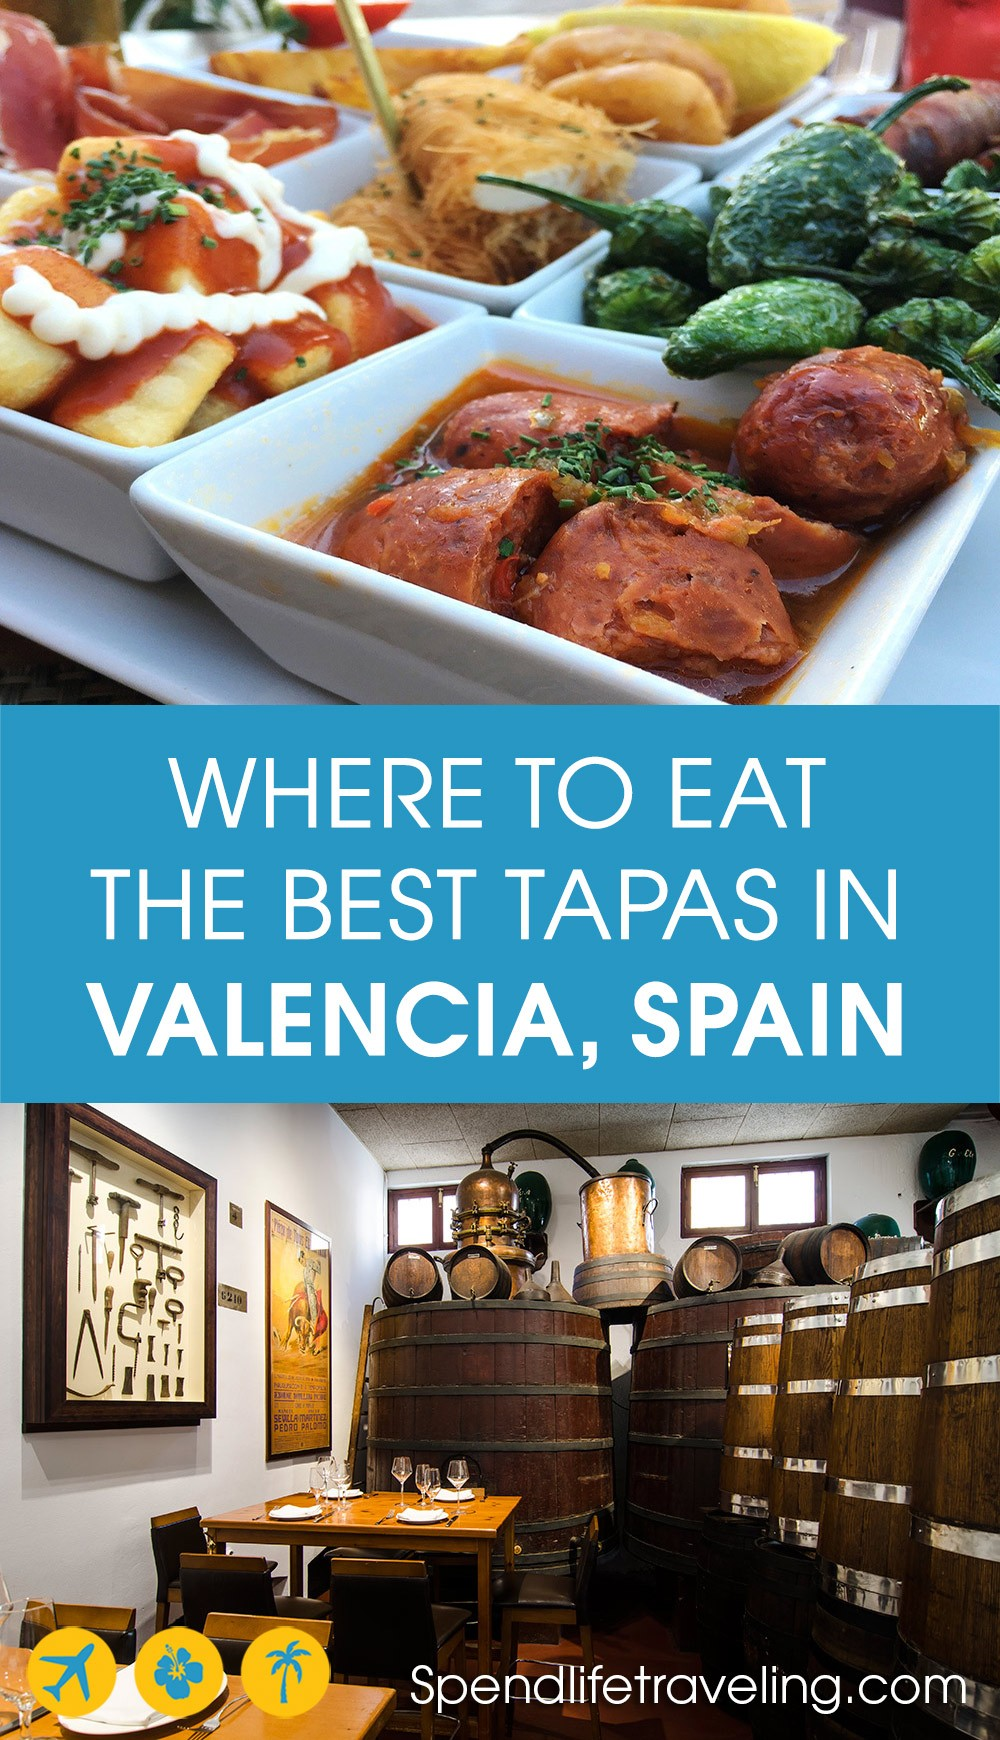 Where to eat the best tapas in Valencia